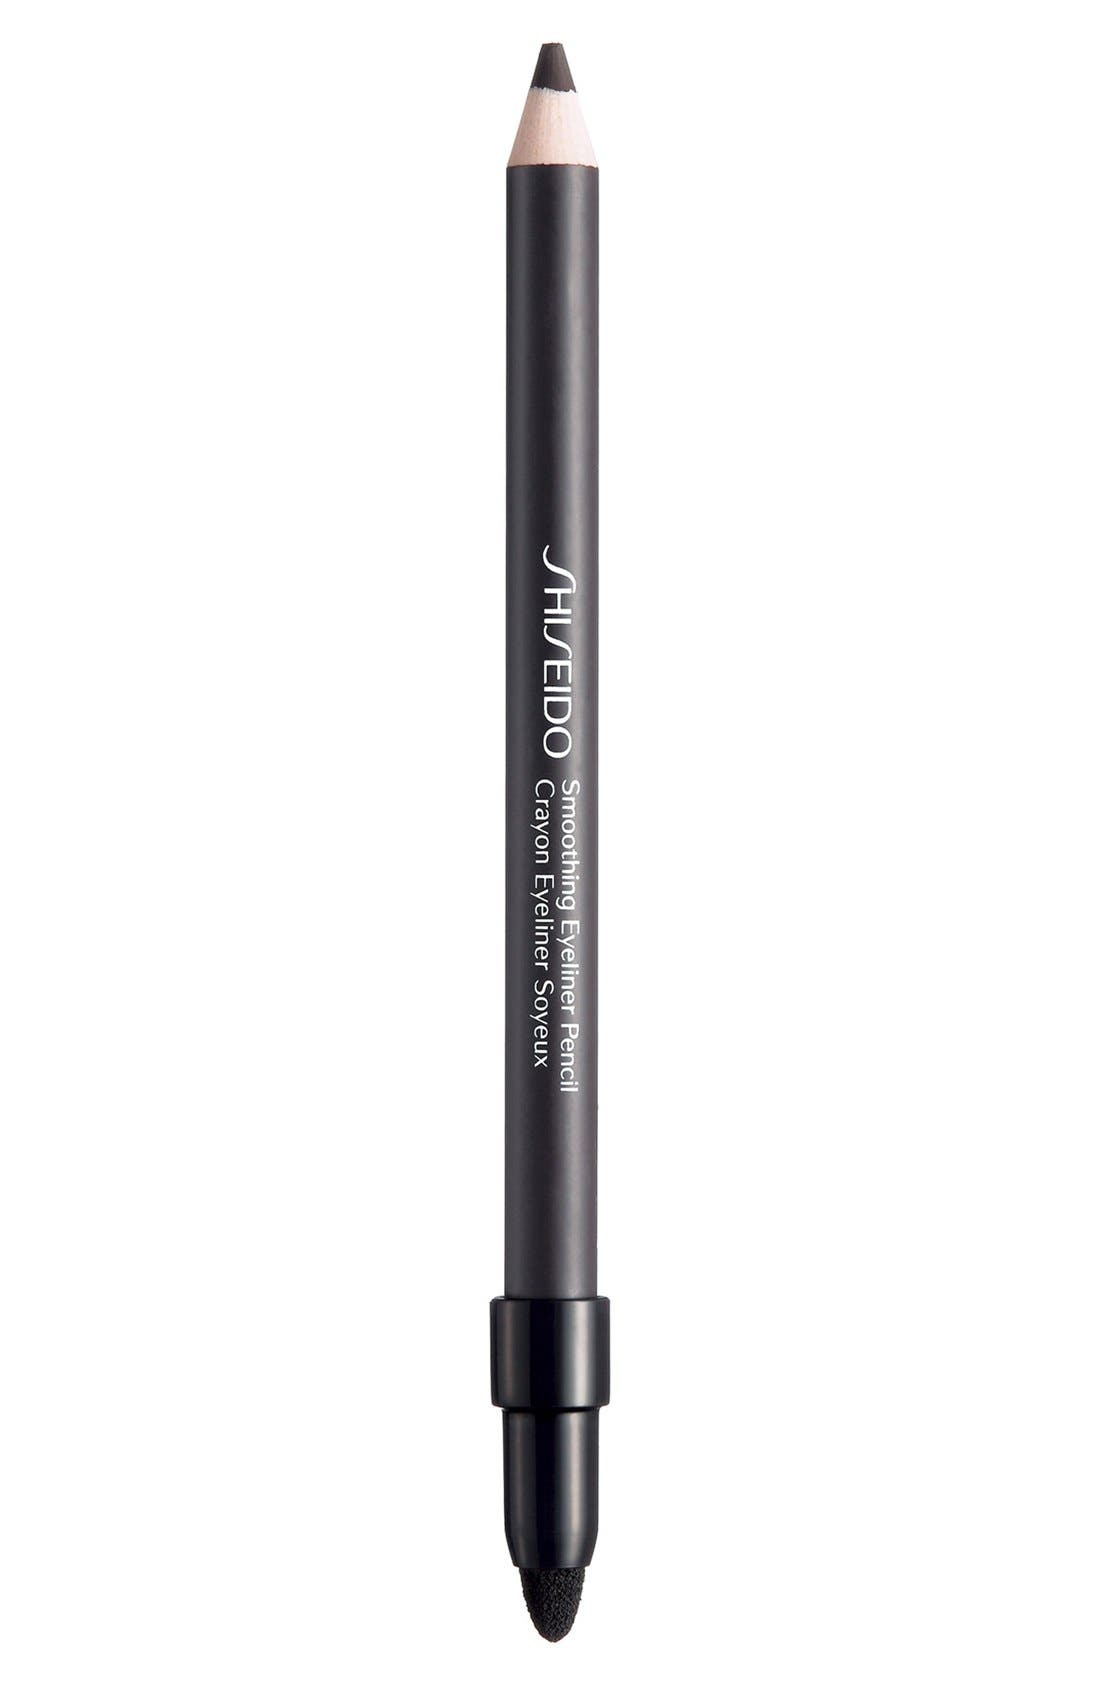 'The Makeup' Smoothing Eyeliner Pencil,                             Alternate thumbnail 5, color,